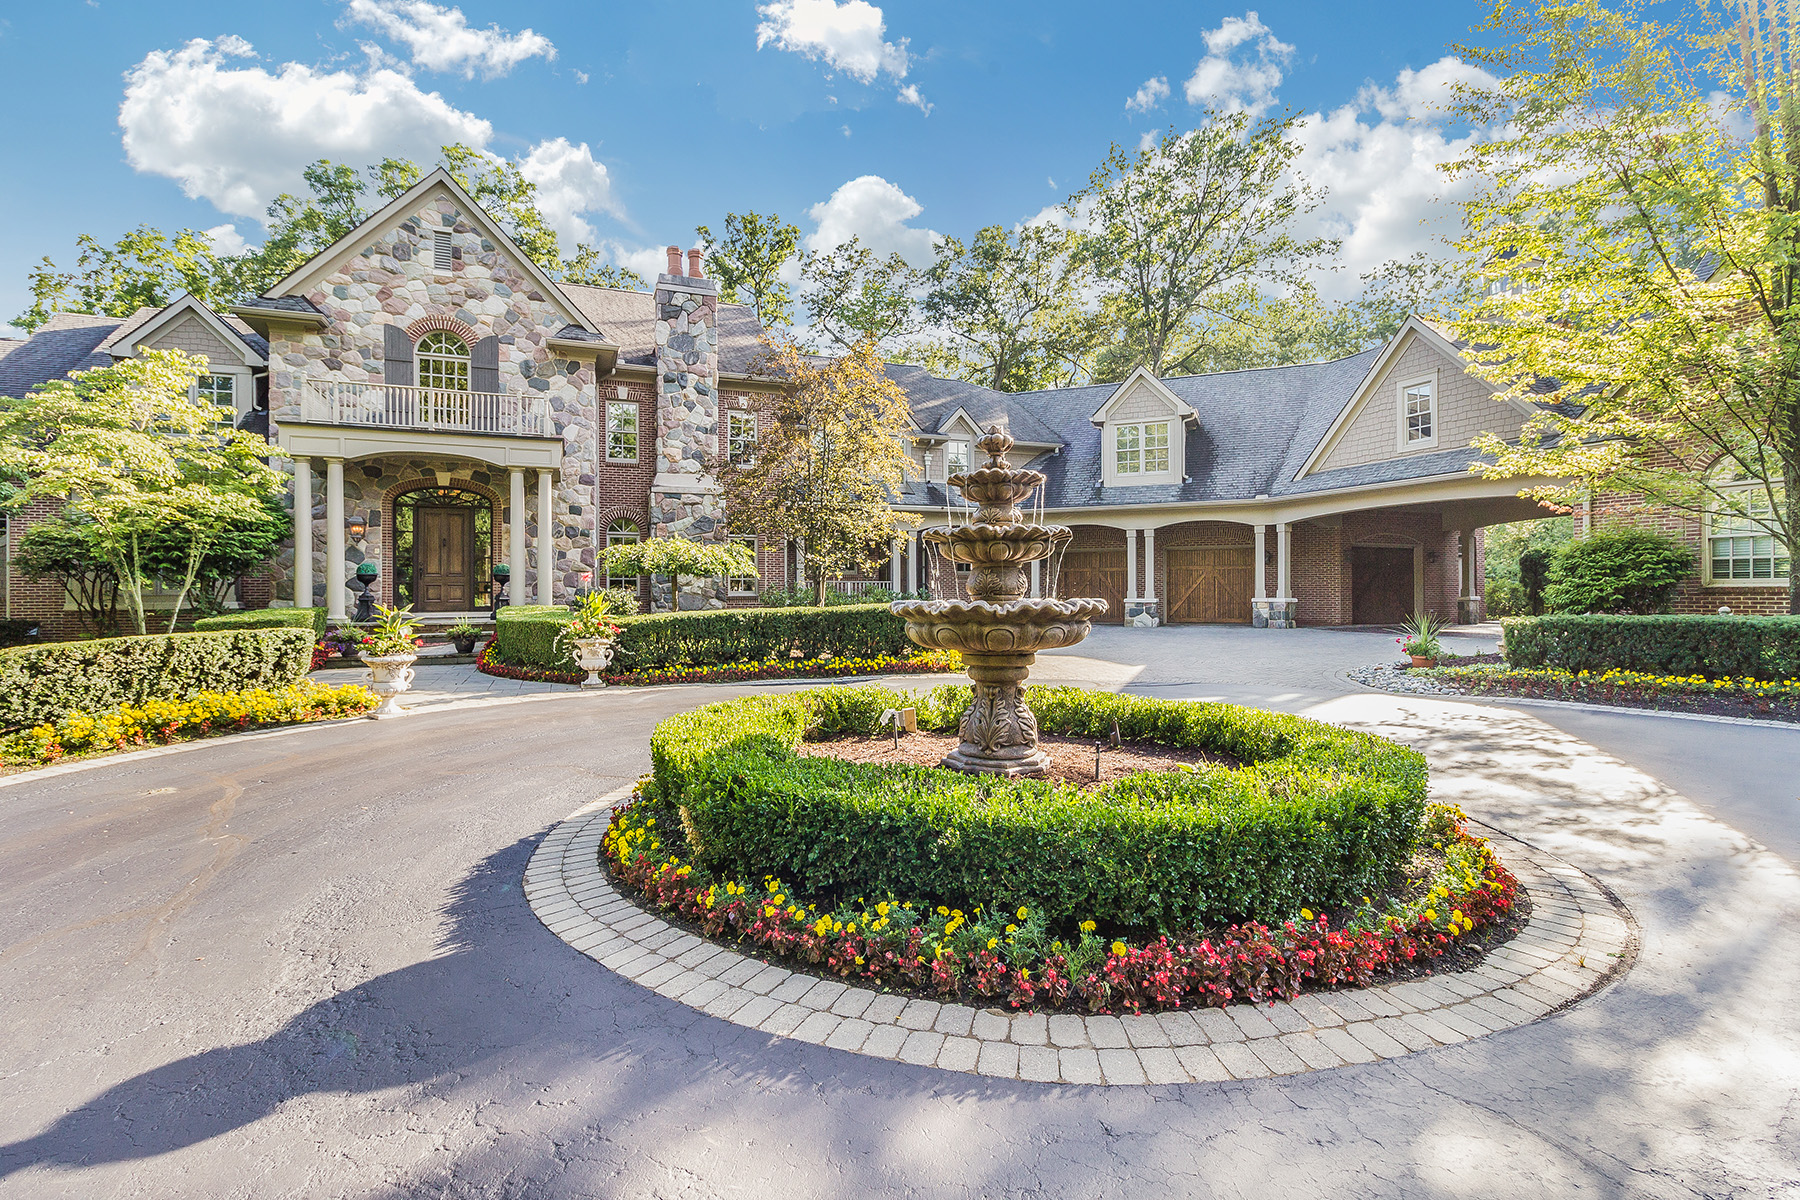 Single Family Homes for Active at Bloomfield Hills 1515 Lone Pine Road Bloomfield Hills, Michigan 48302 United States